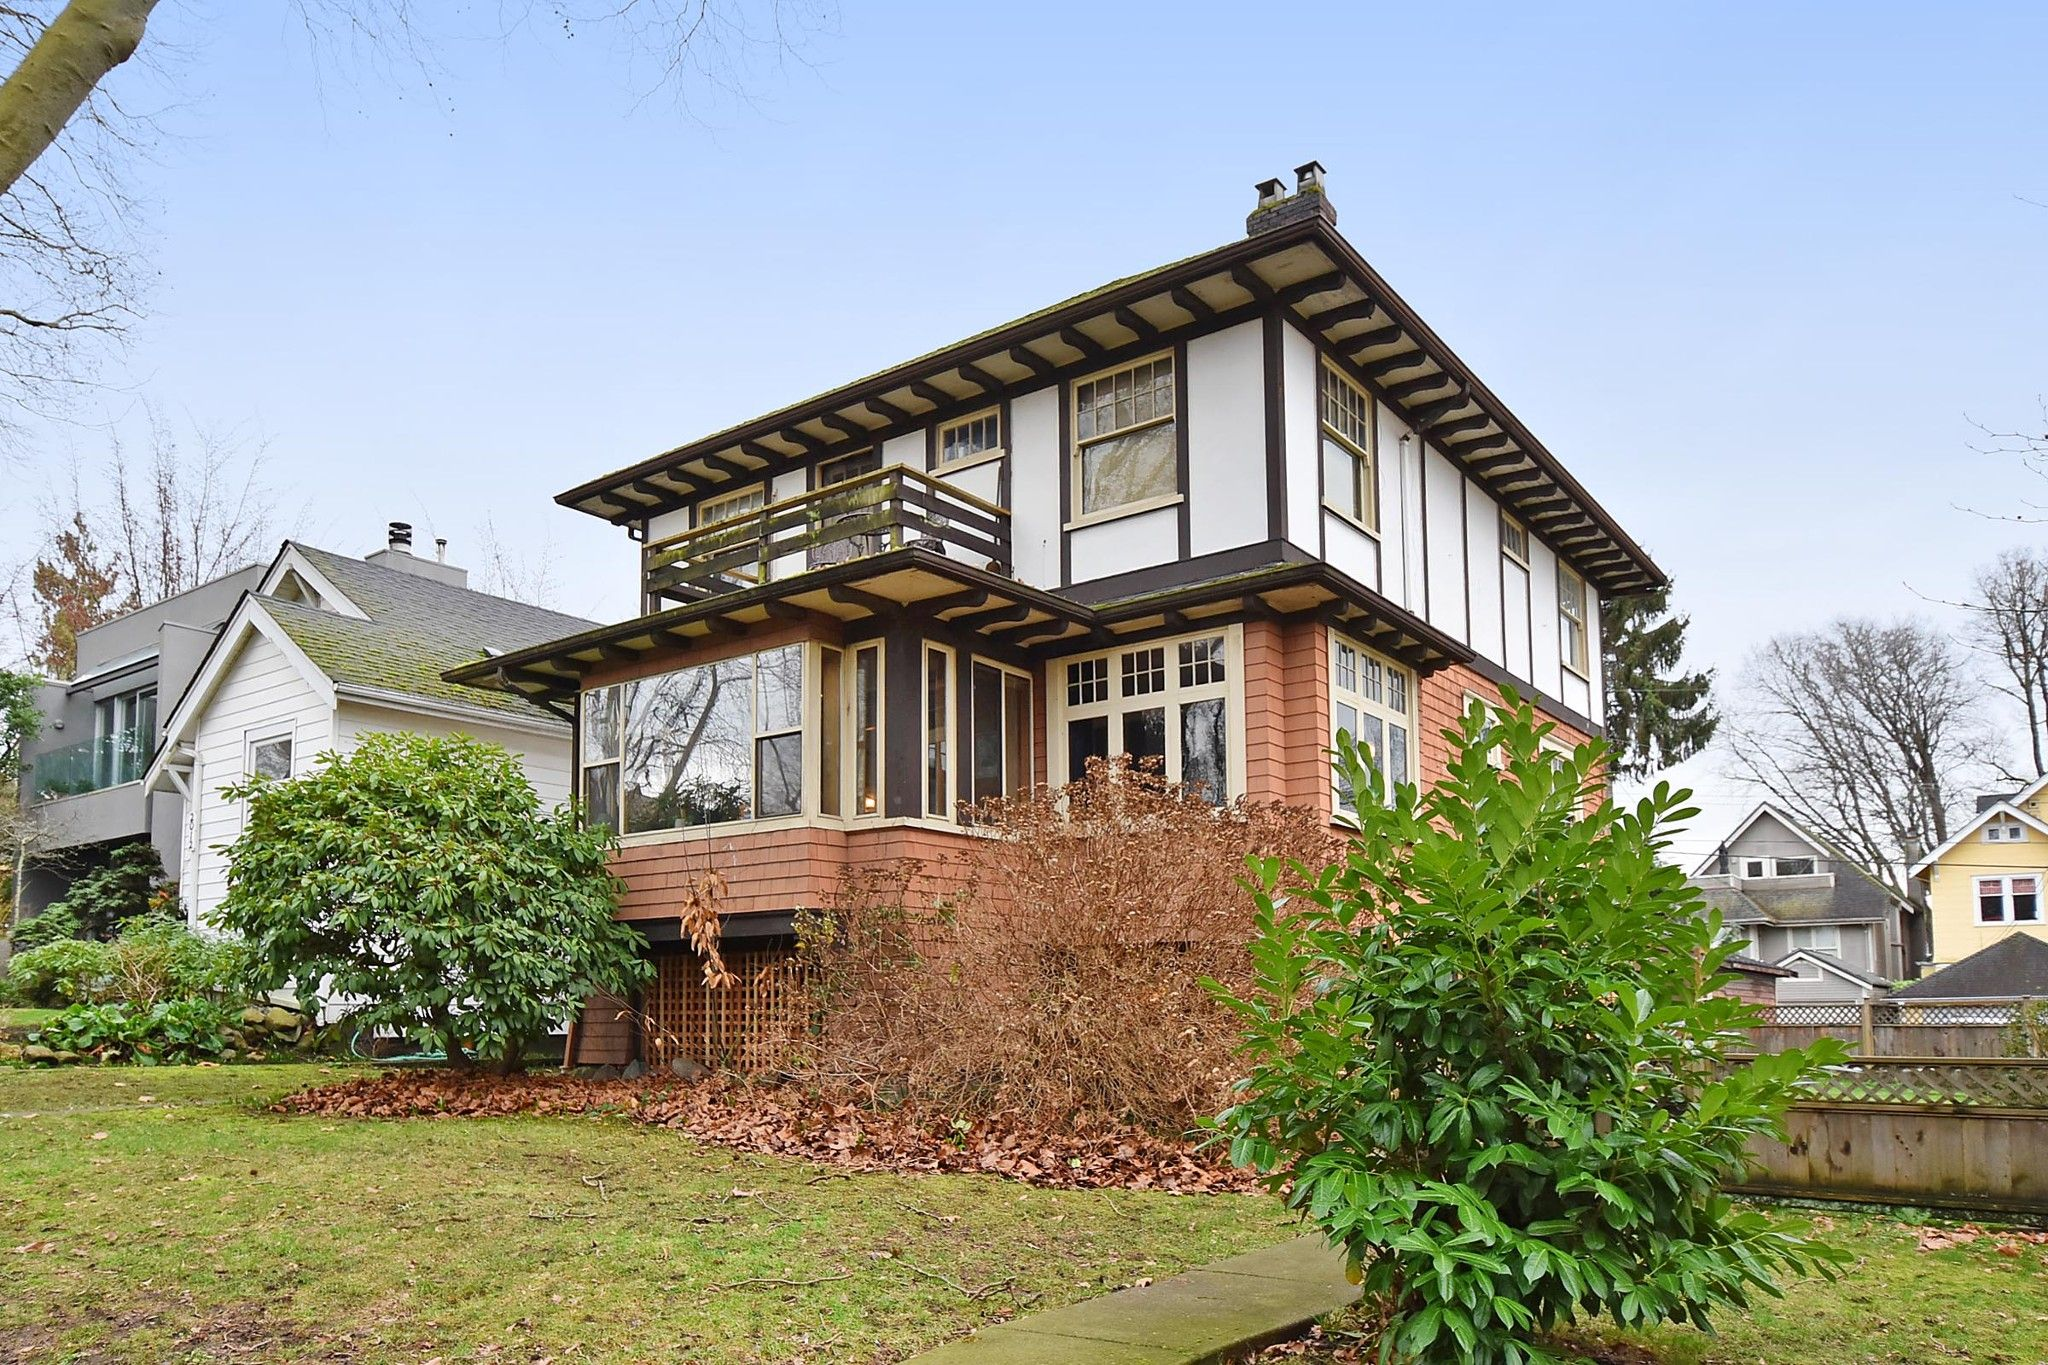 """Main Photo: 2020 MCNICOLL Avenue in Vancouver: Kitsilano House for sale in """"Kits Point"""" (Vancouver West)  : MLS®# R2428928"""